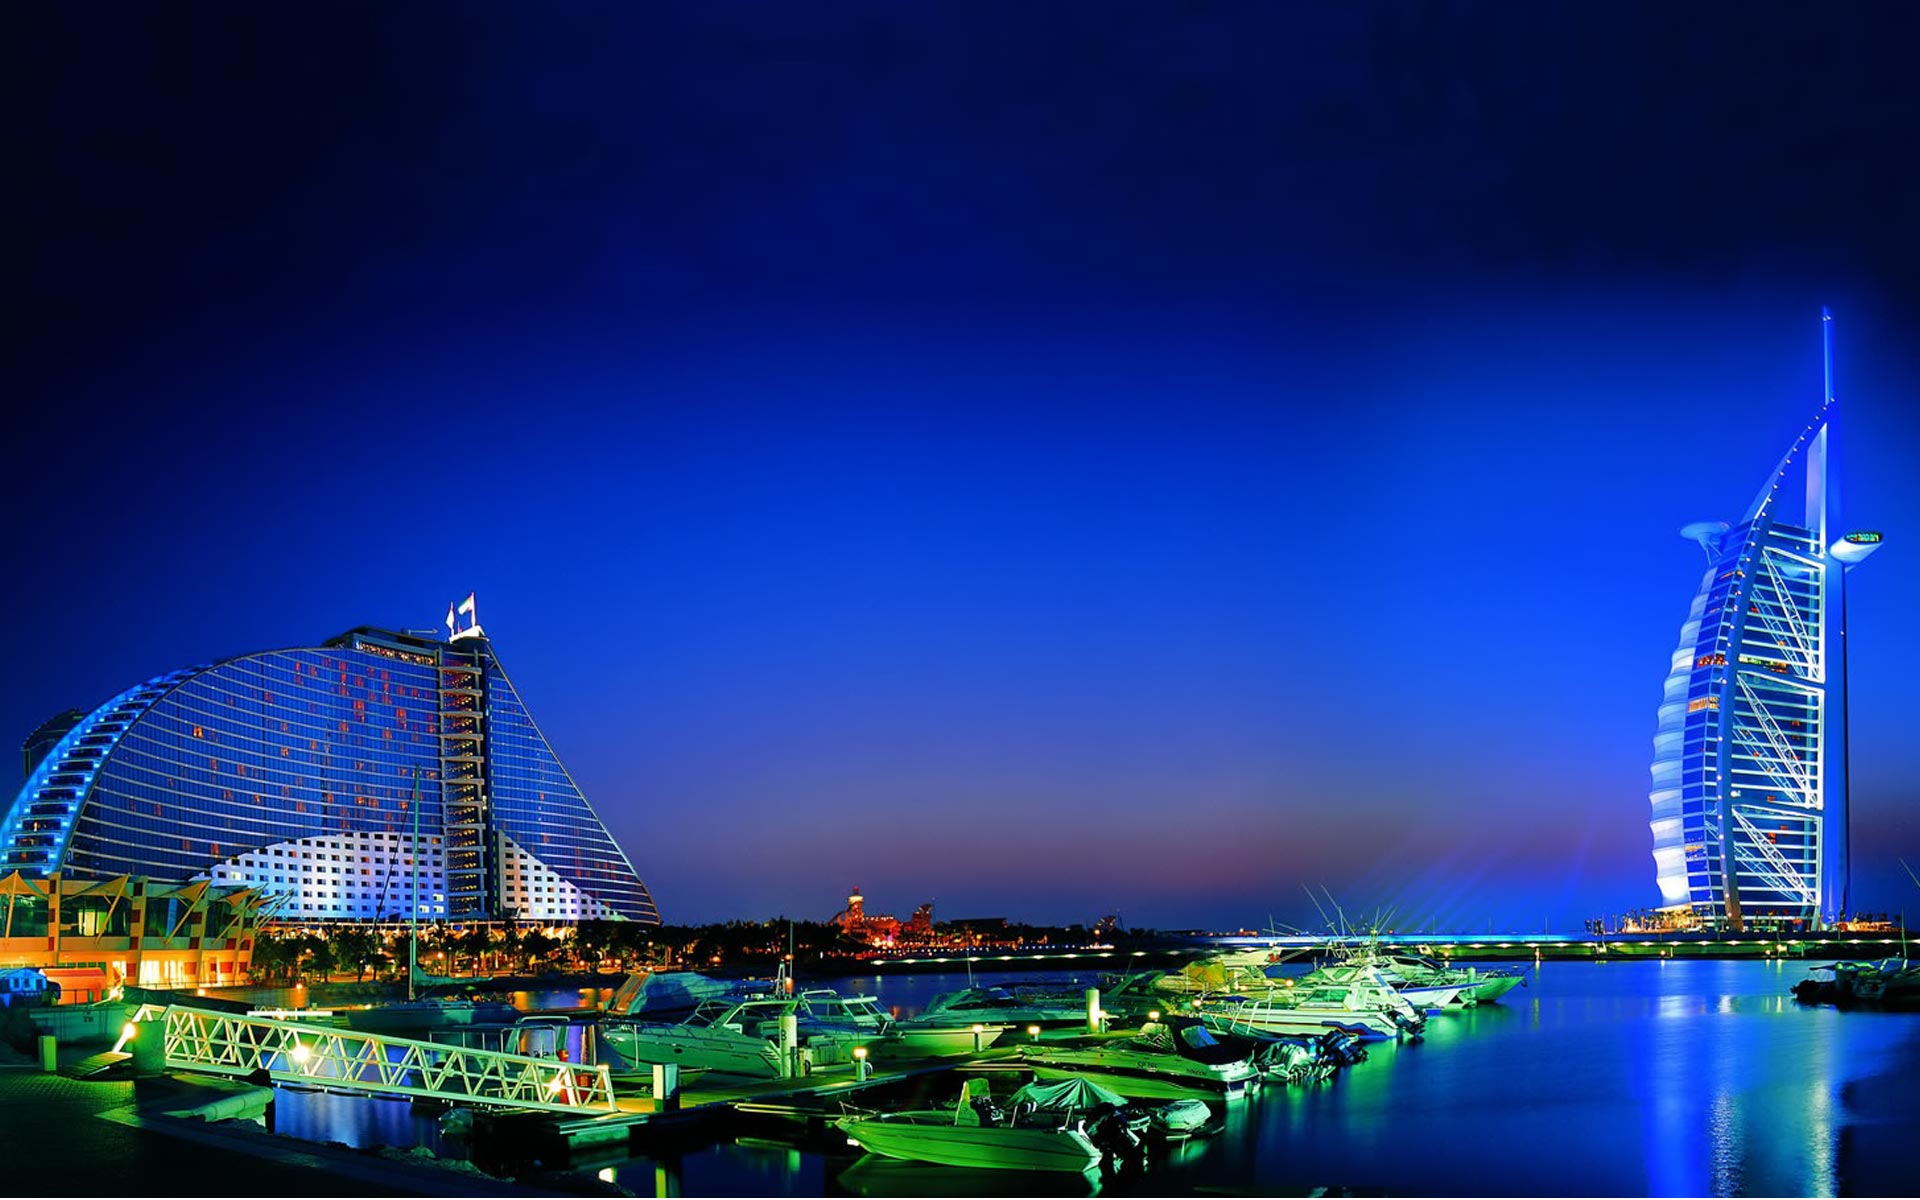 Dubai Nightlife Desktop hd Wallpaper and make this wallpaper for your 1920x1200